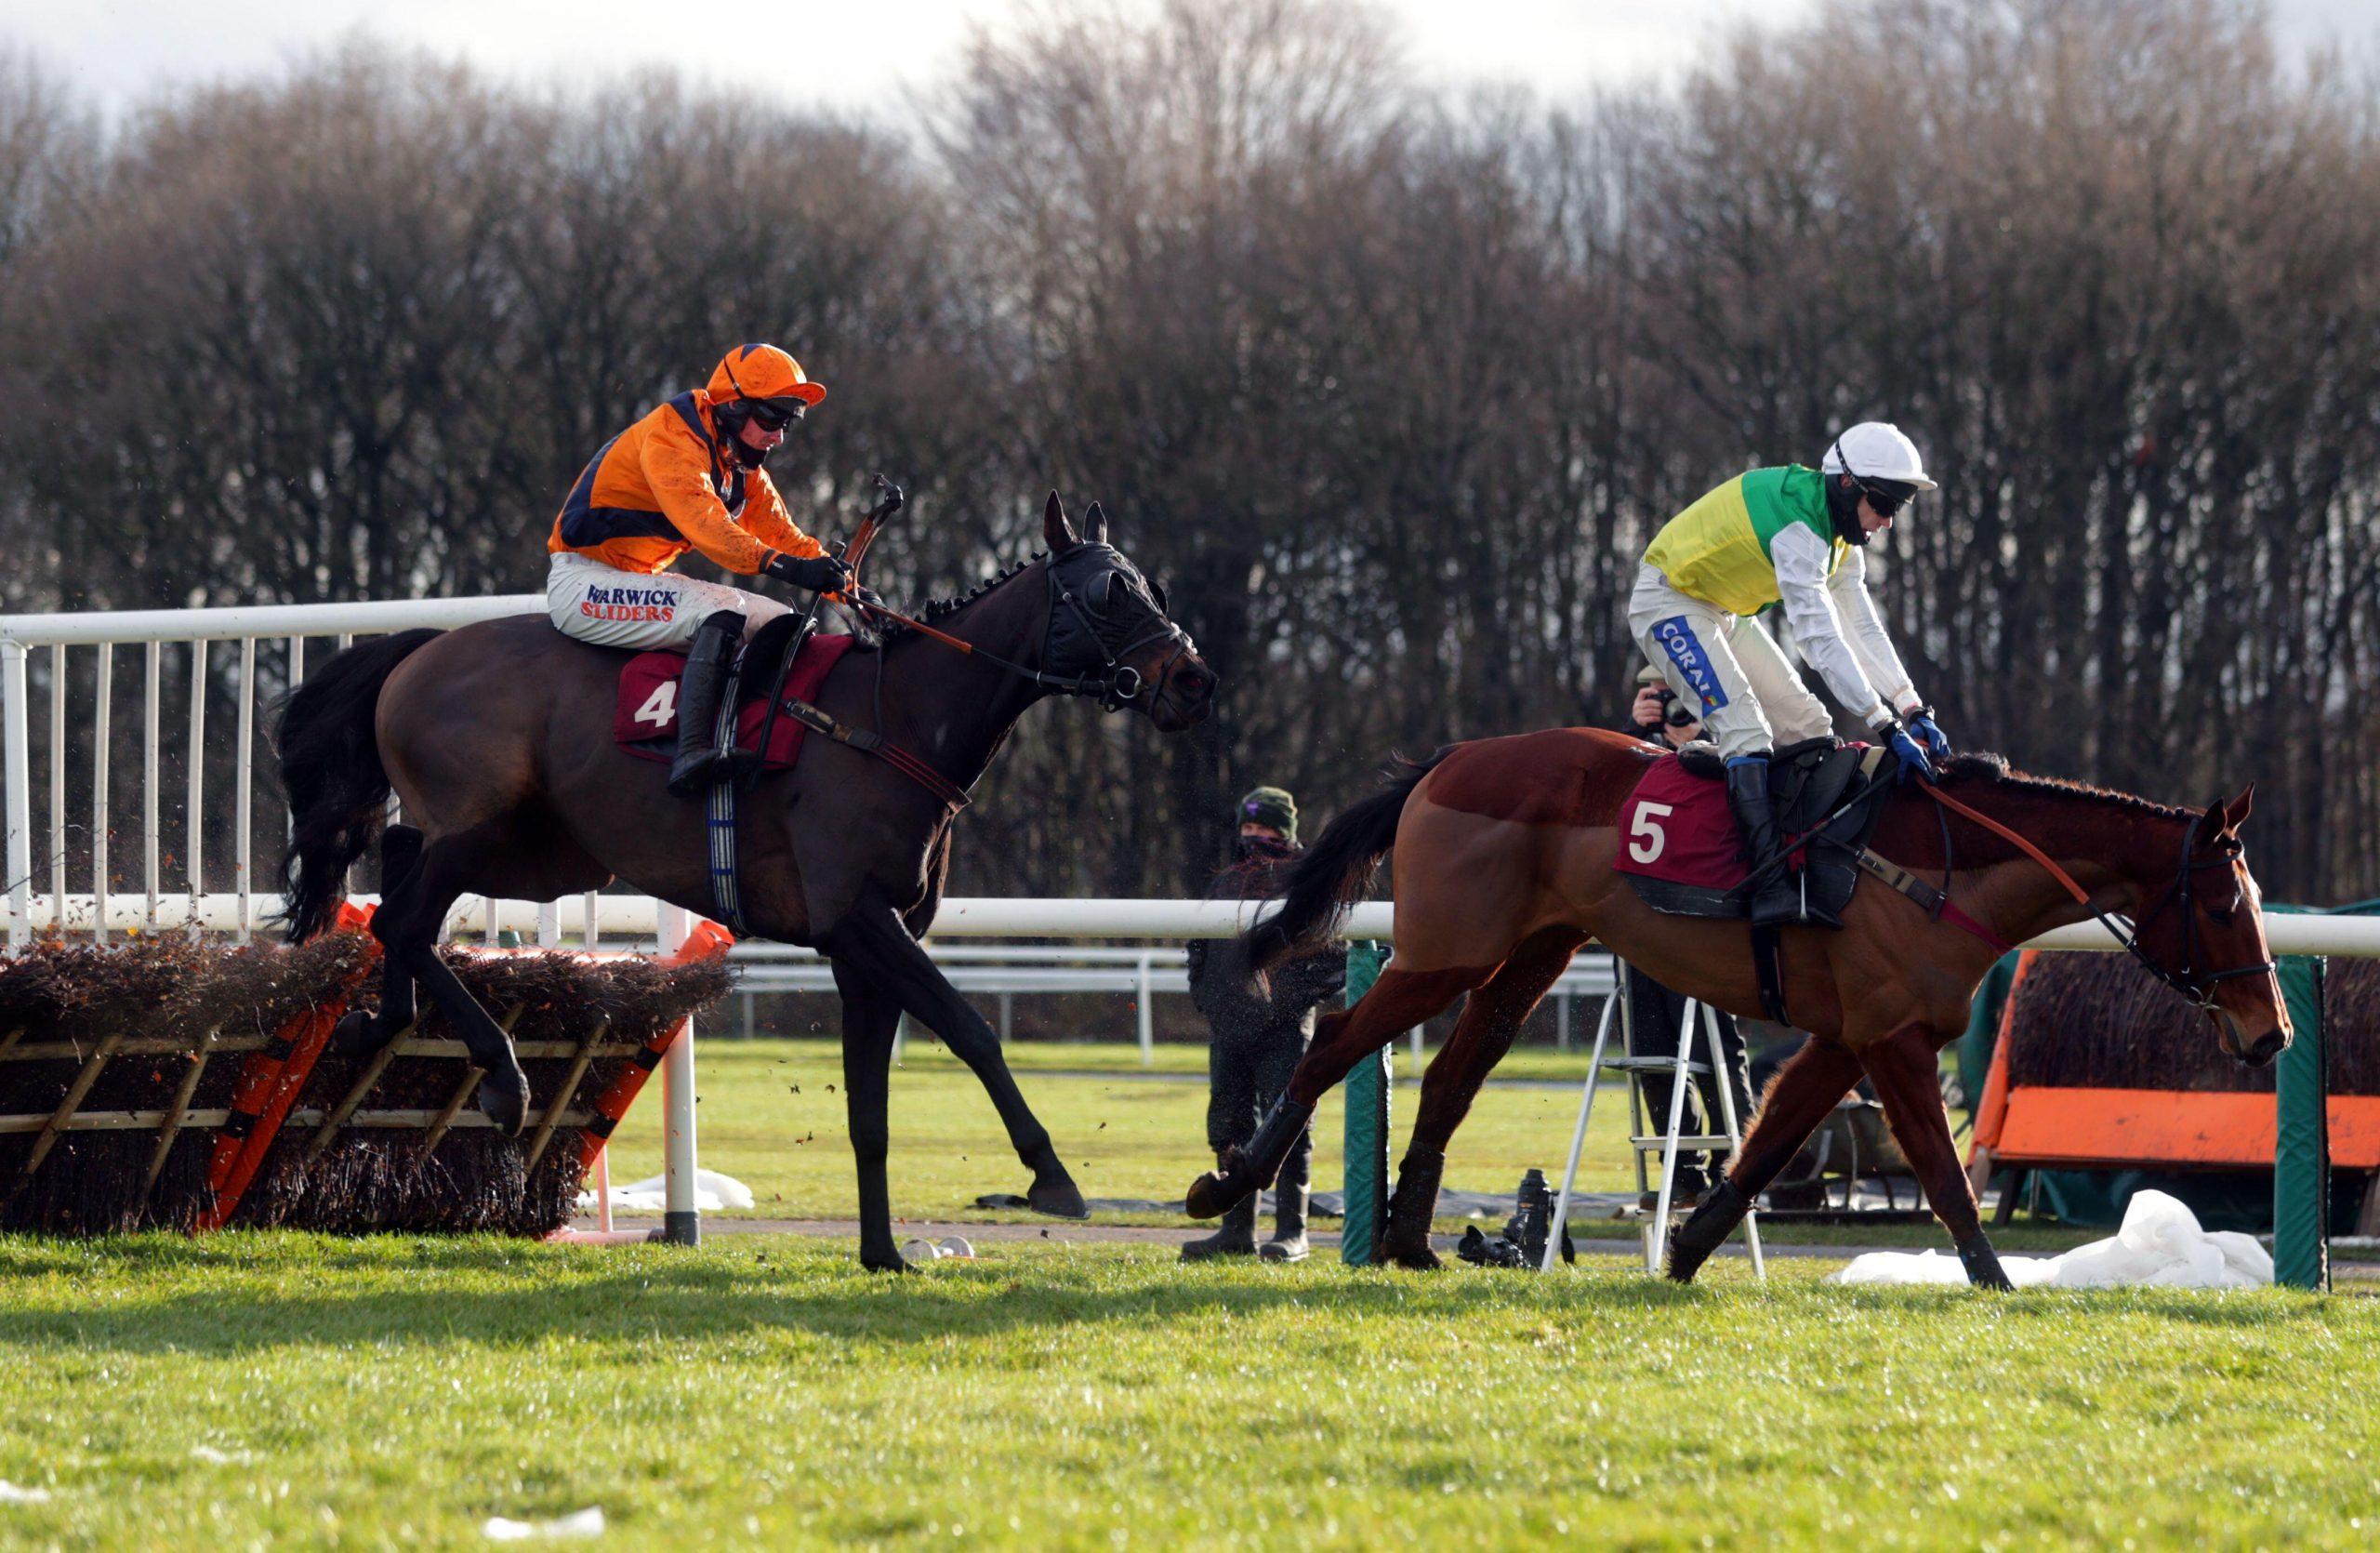 Potters Hedger ridden by Jack Quinlan (left) on their way to winning the Unibet Extra Place Races Every Day Handicap Hurdle at Haydock Park Racecourse. Picture date: Saturday January 23, 2021.